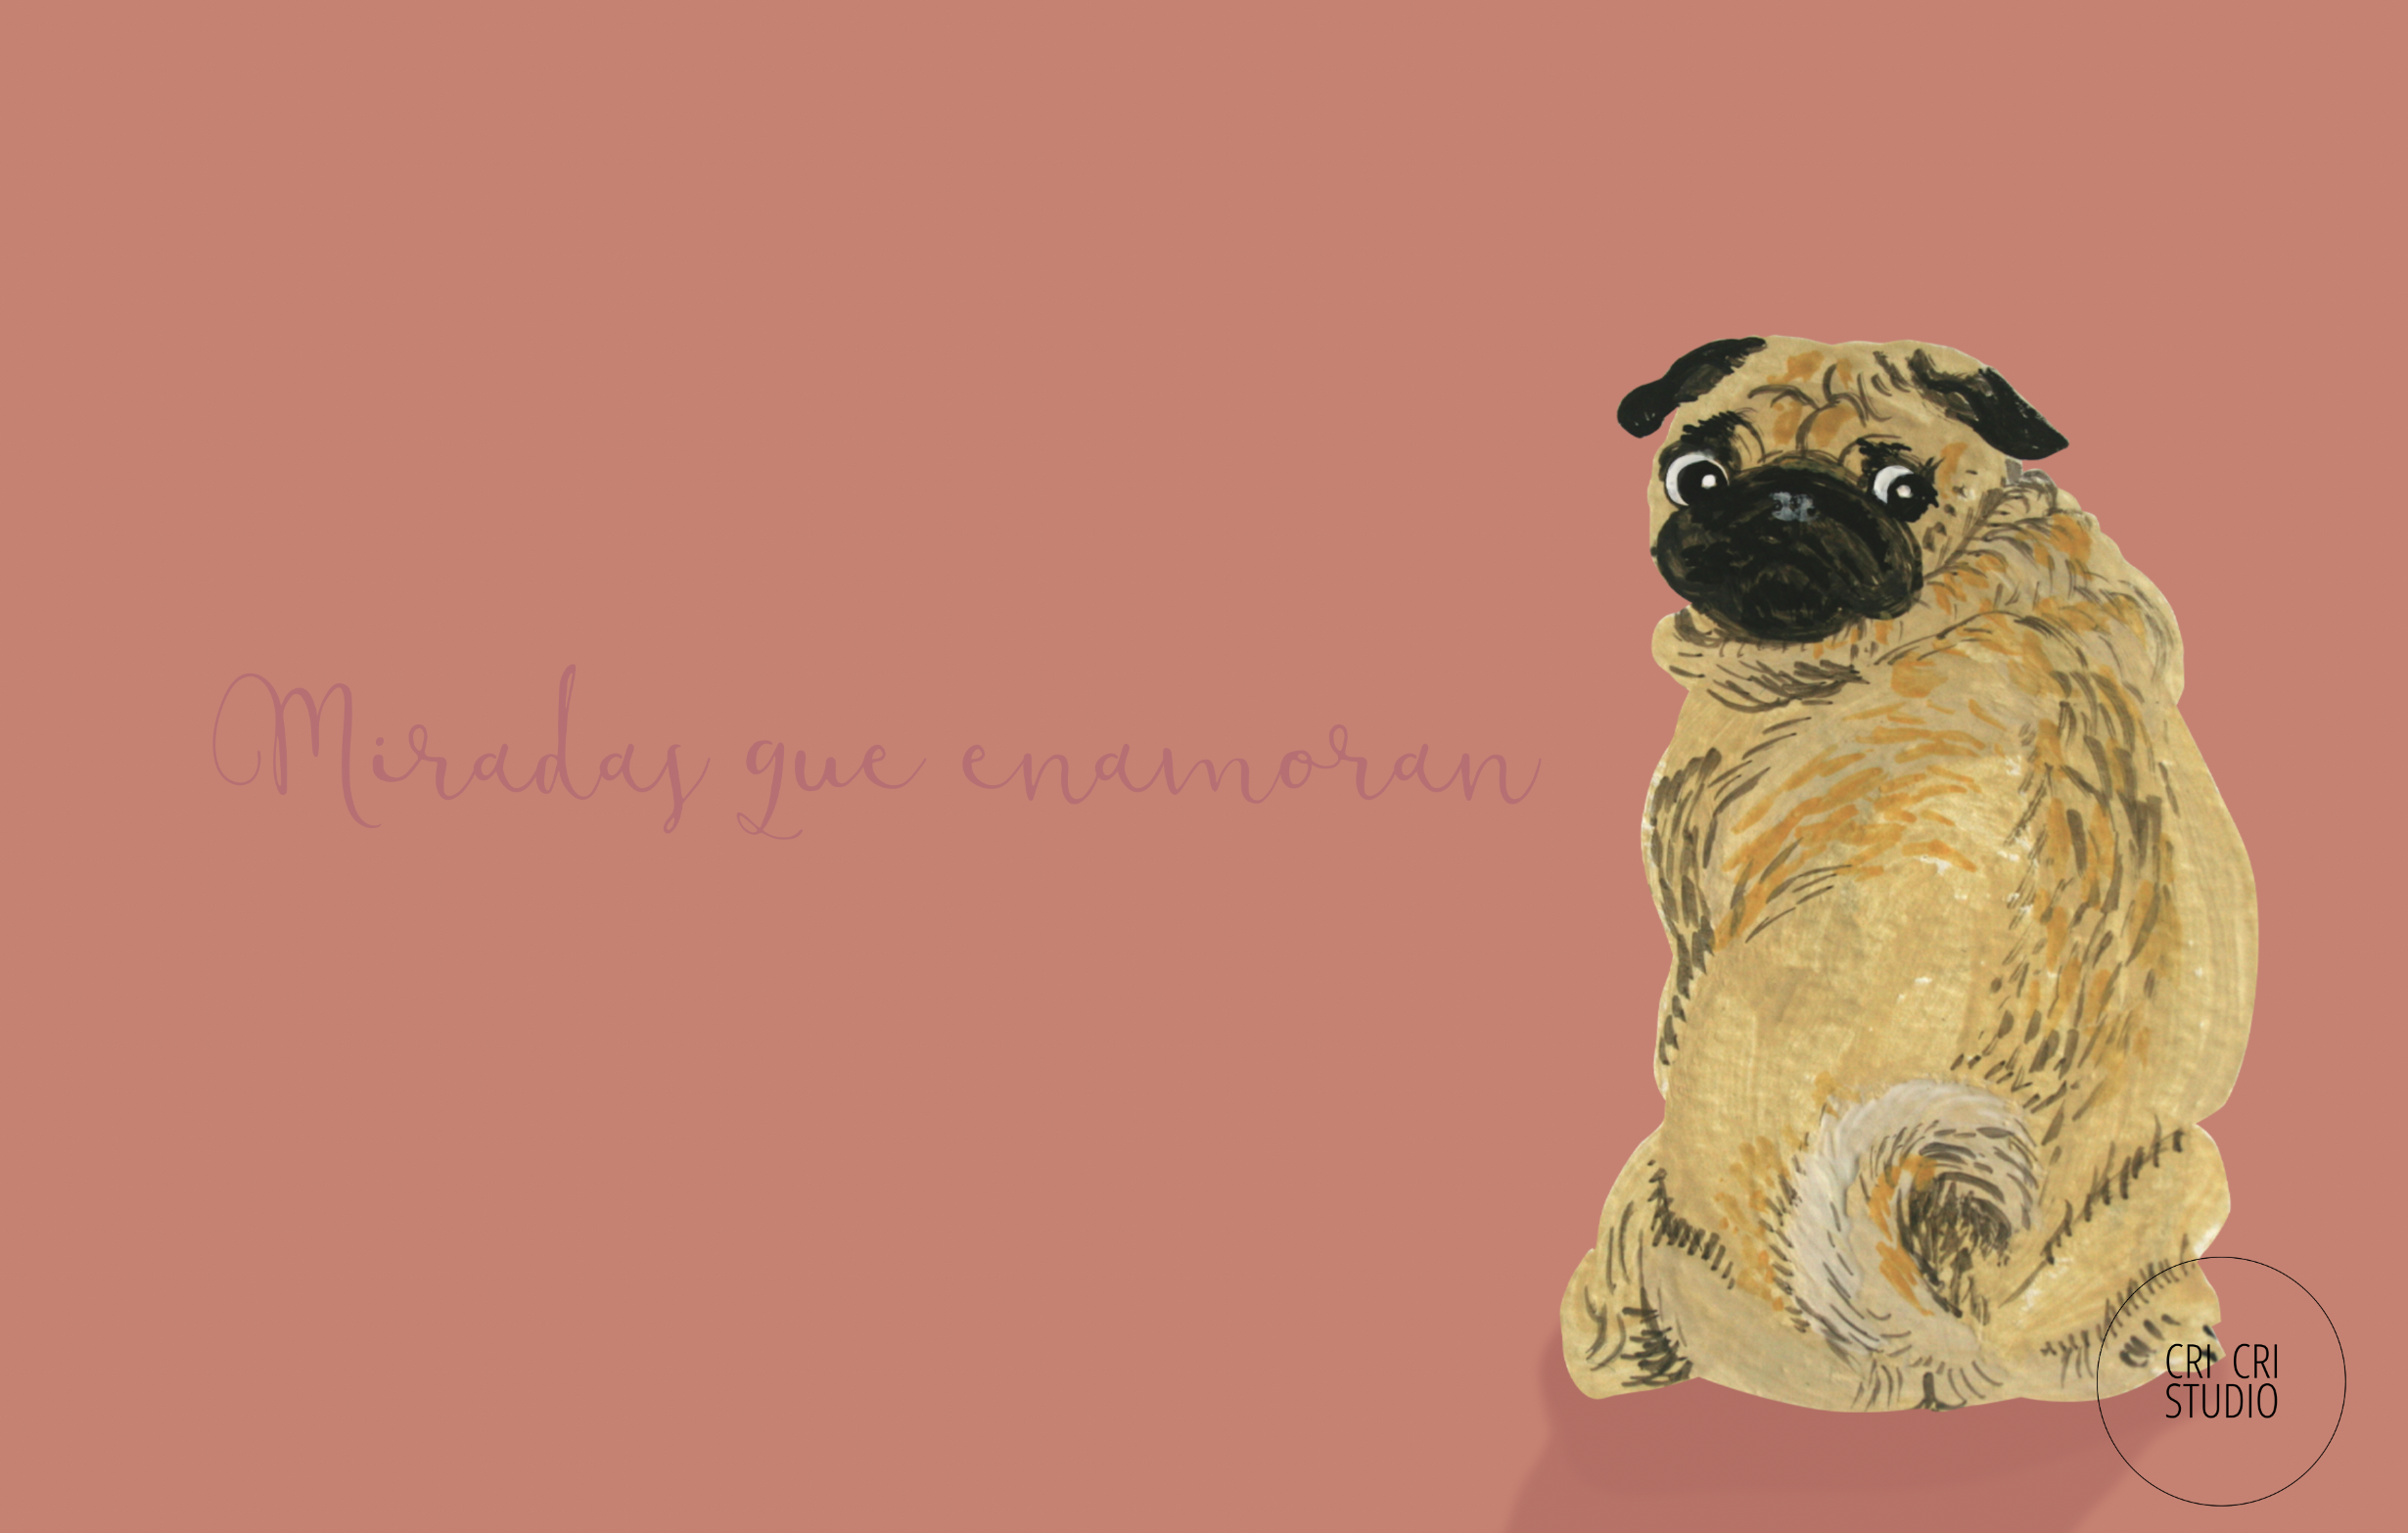 Pug illustration by Cri Cri Studio